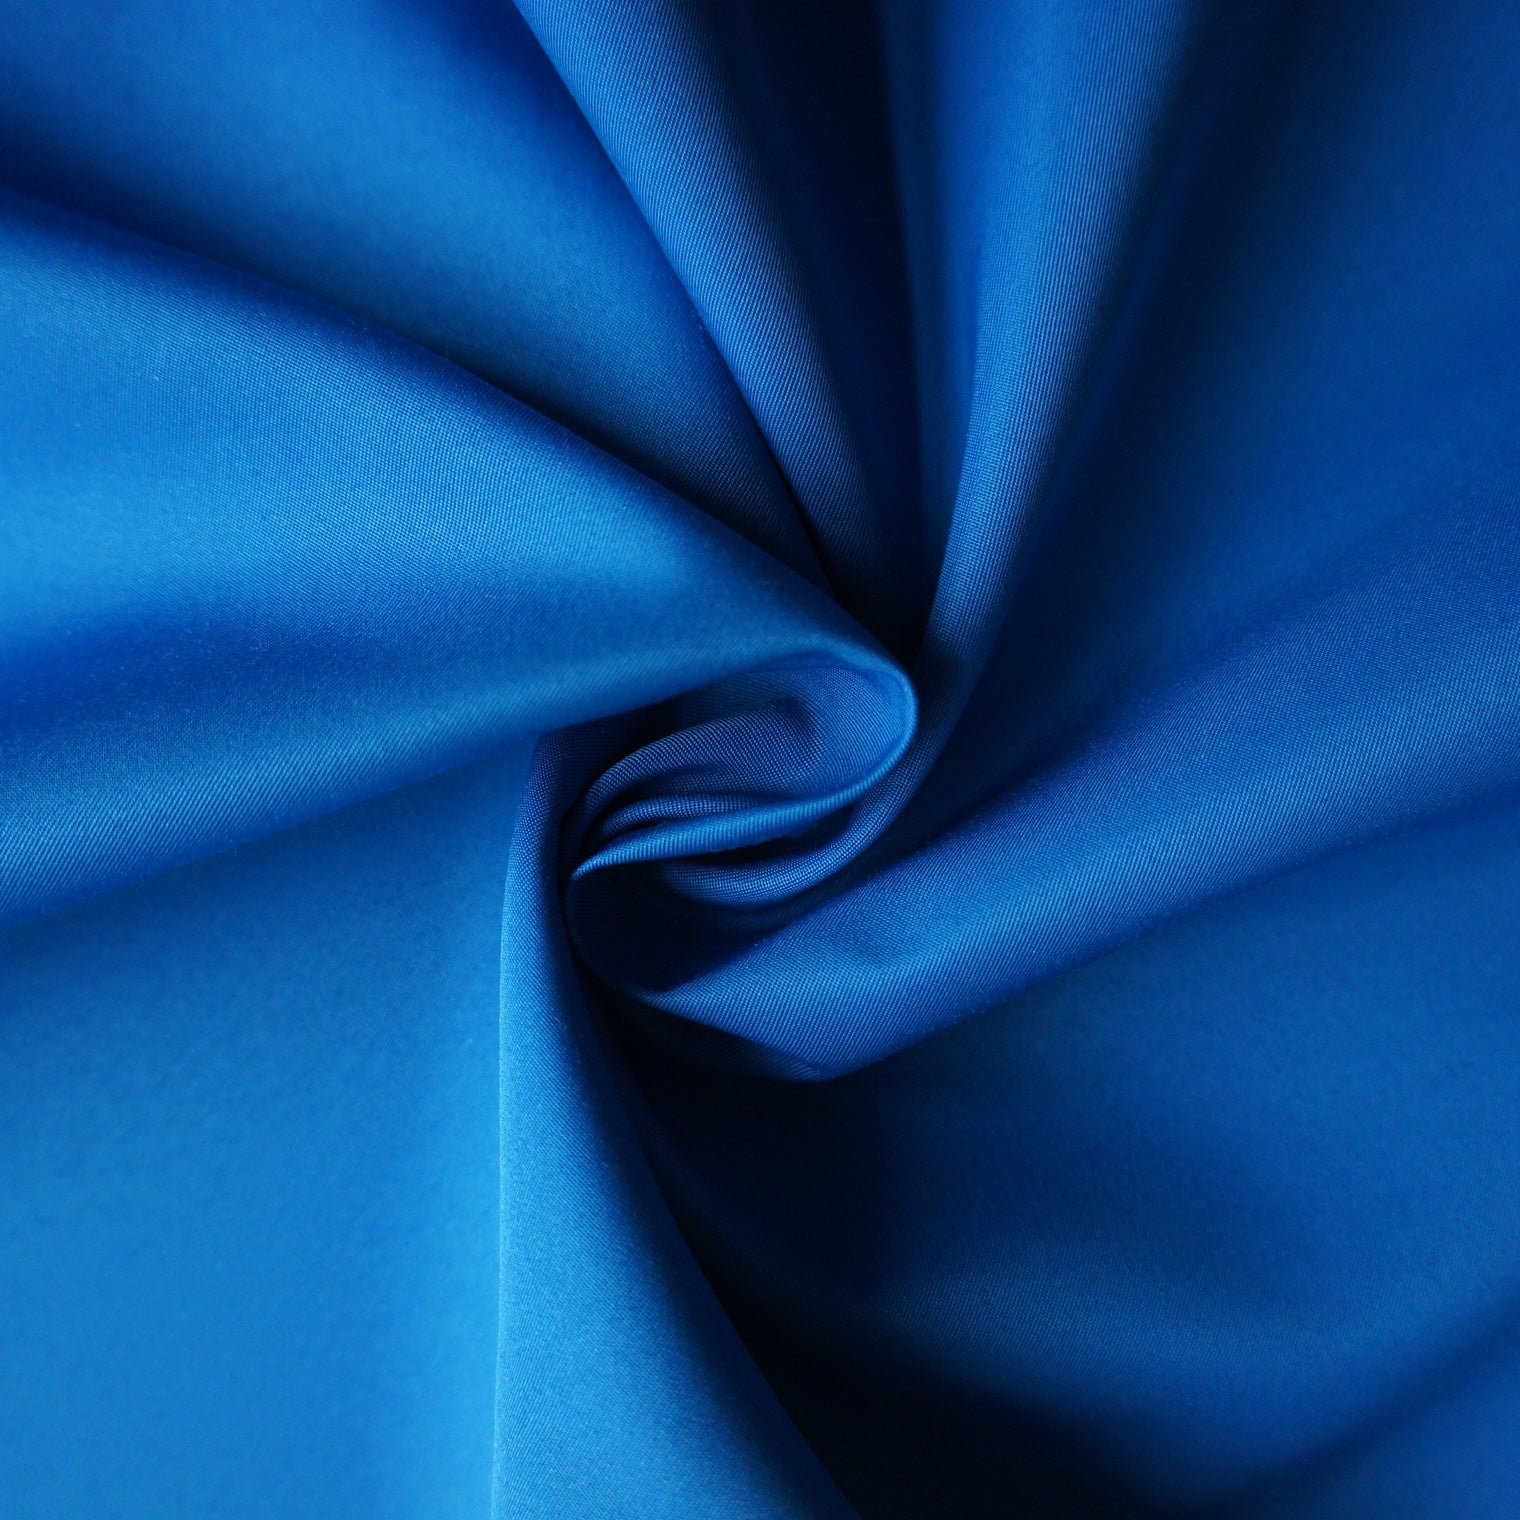 Blue Recycled Polyester Satin